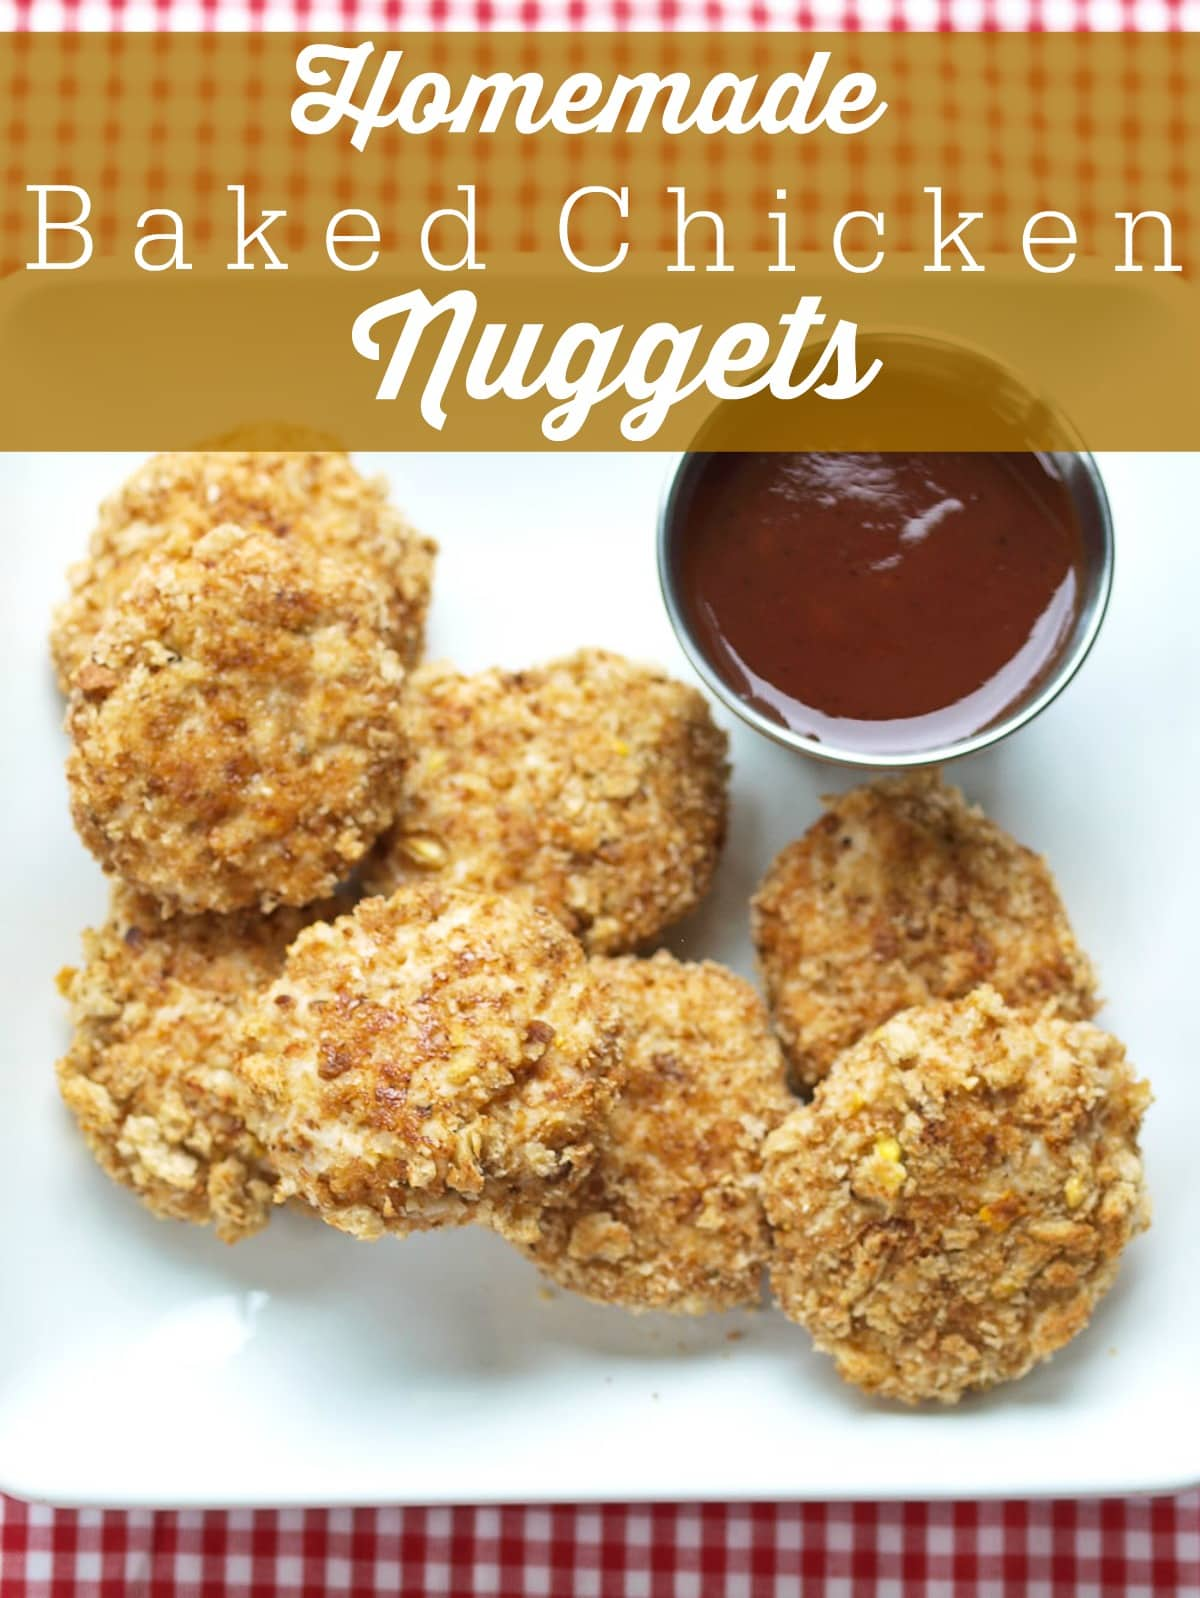 Homemade Baked Chicken Nuggets. Finally! A homemade chicken nugget recipe the whole family loves! Soft enough for your toddler and satisfying enough for the parents, too. These also freeze great so you can make a huge batch for those busy nights. They are so easy to make also! Easy and healthy weeknight recipe.